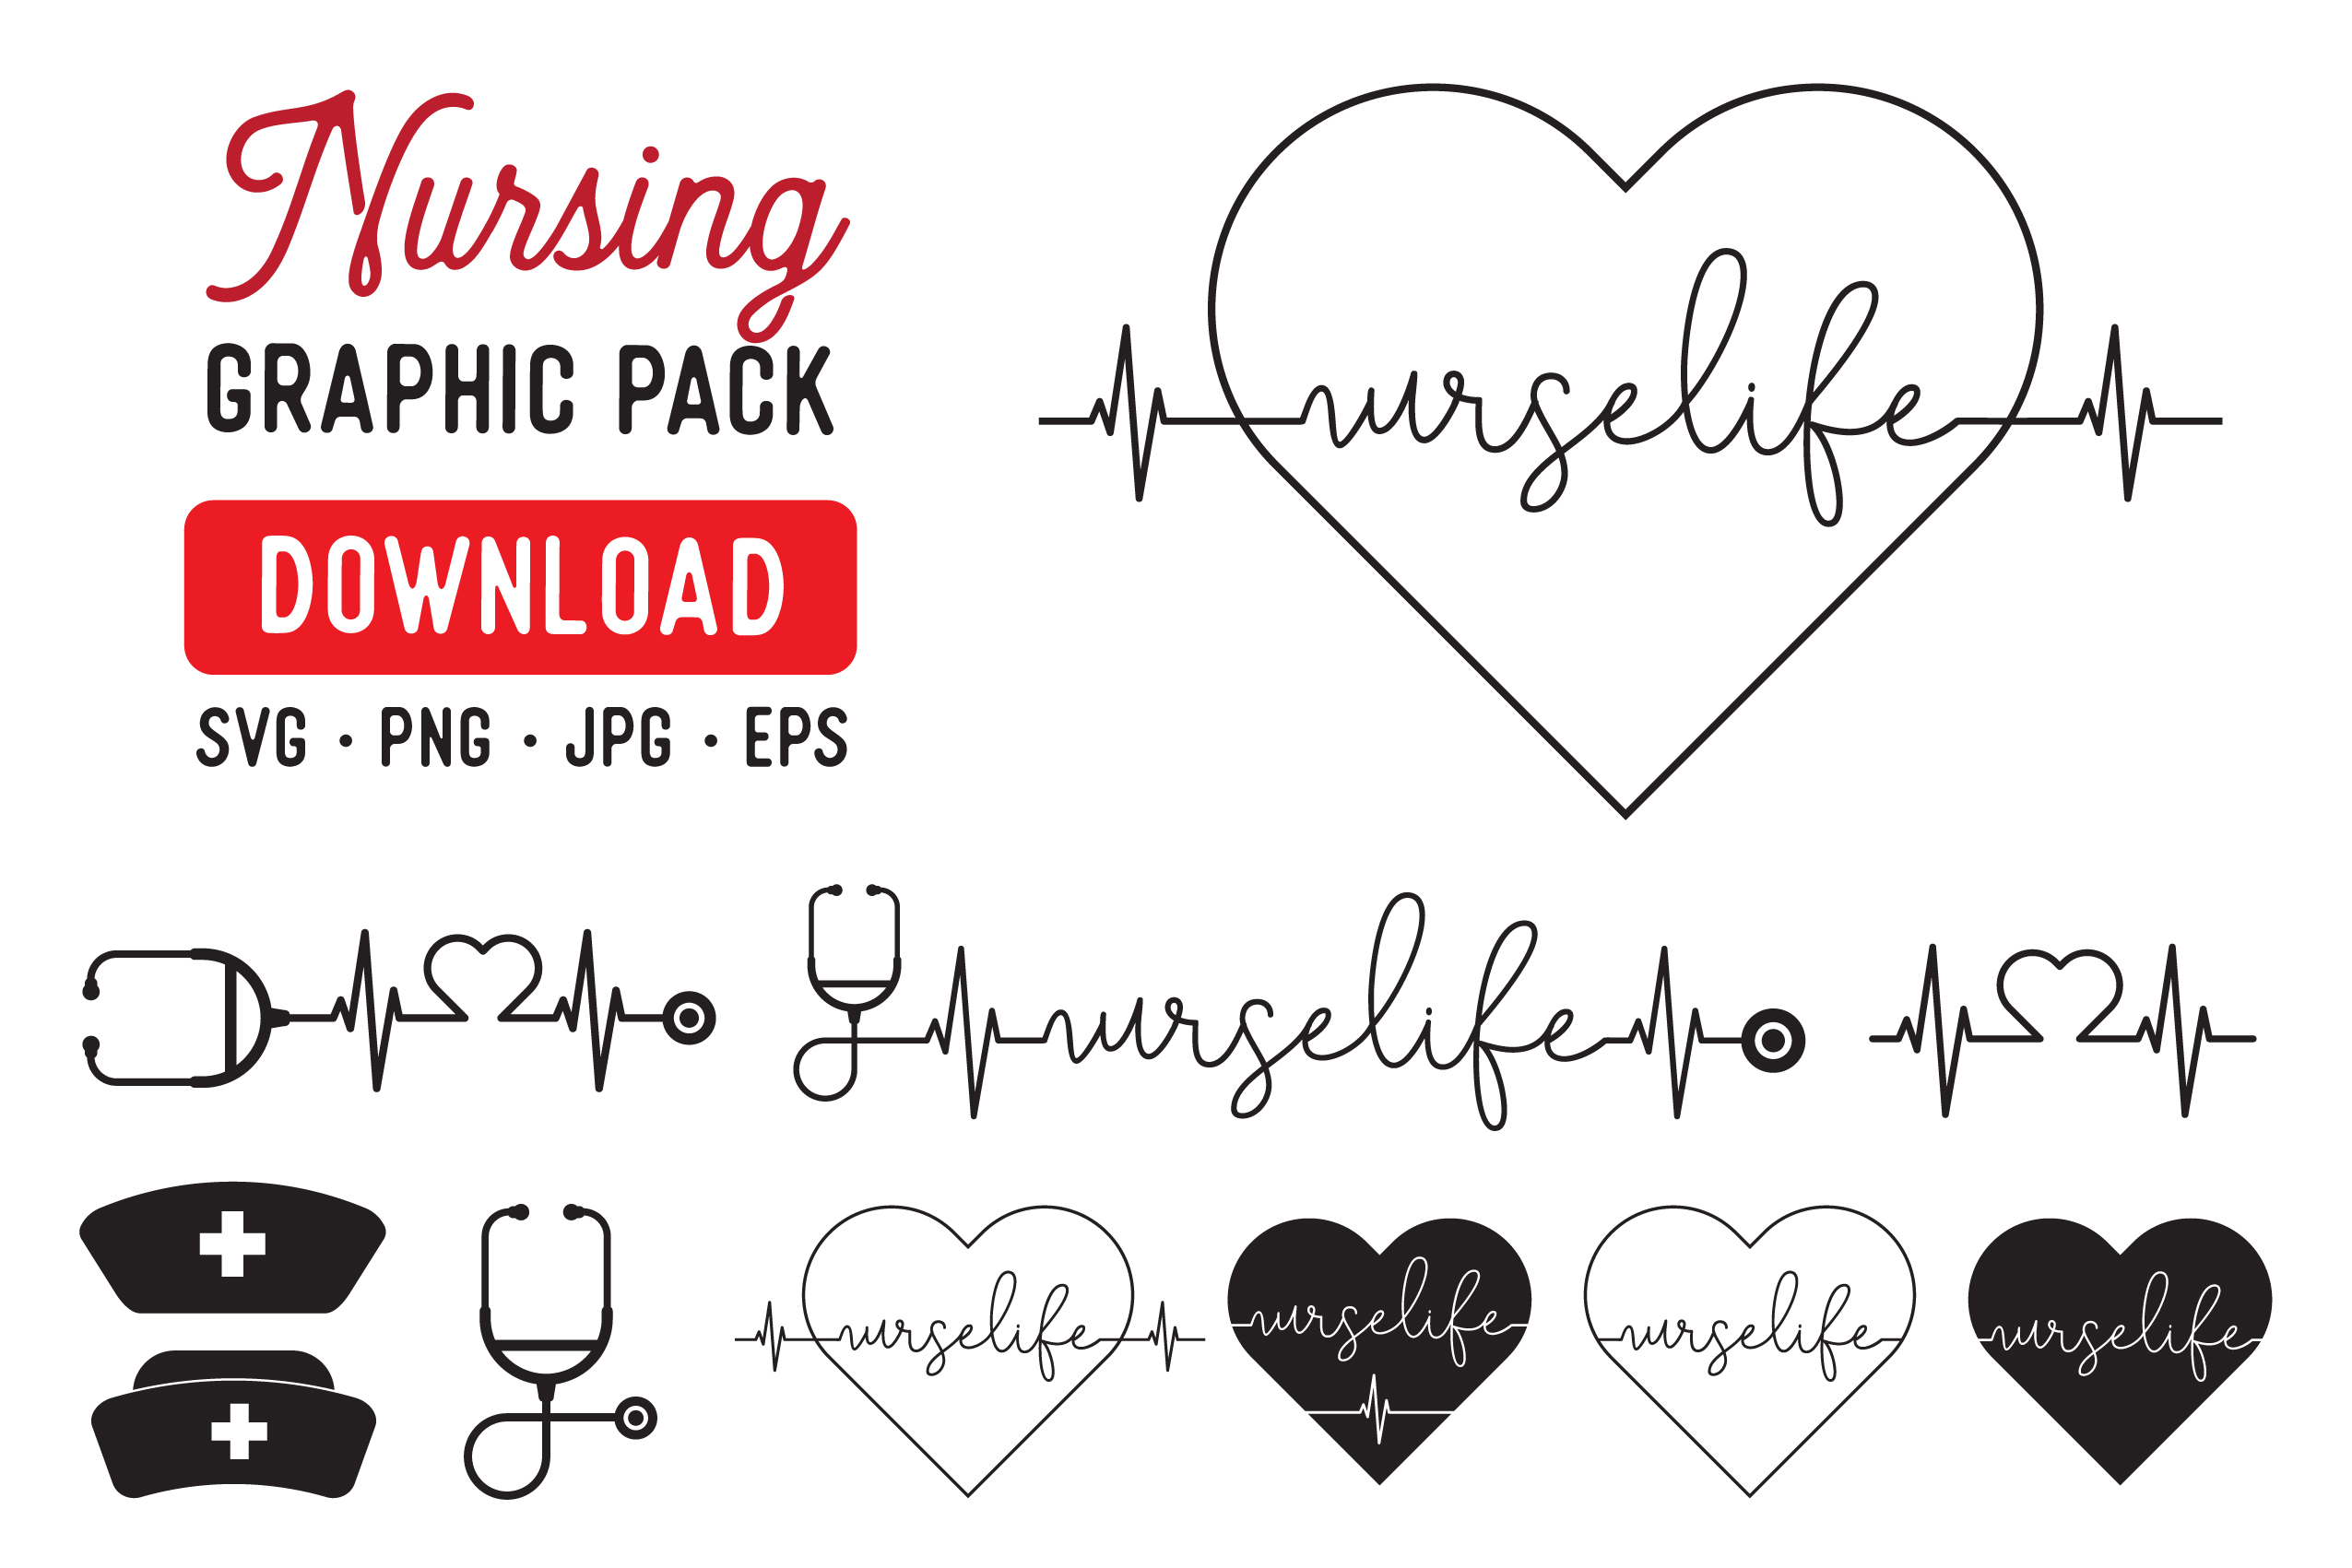 Download Free Nurse Life Nursing Graphic Pack Graphic By The Gradient Fox for Cricut Explore, Silhouette and other cutting machines.